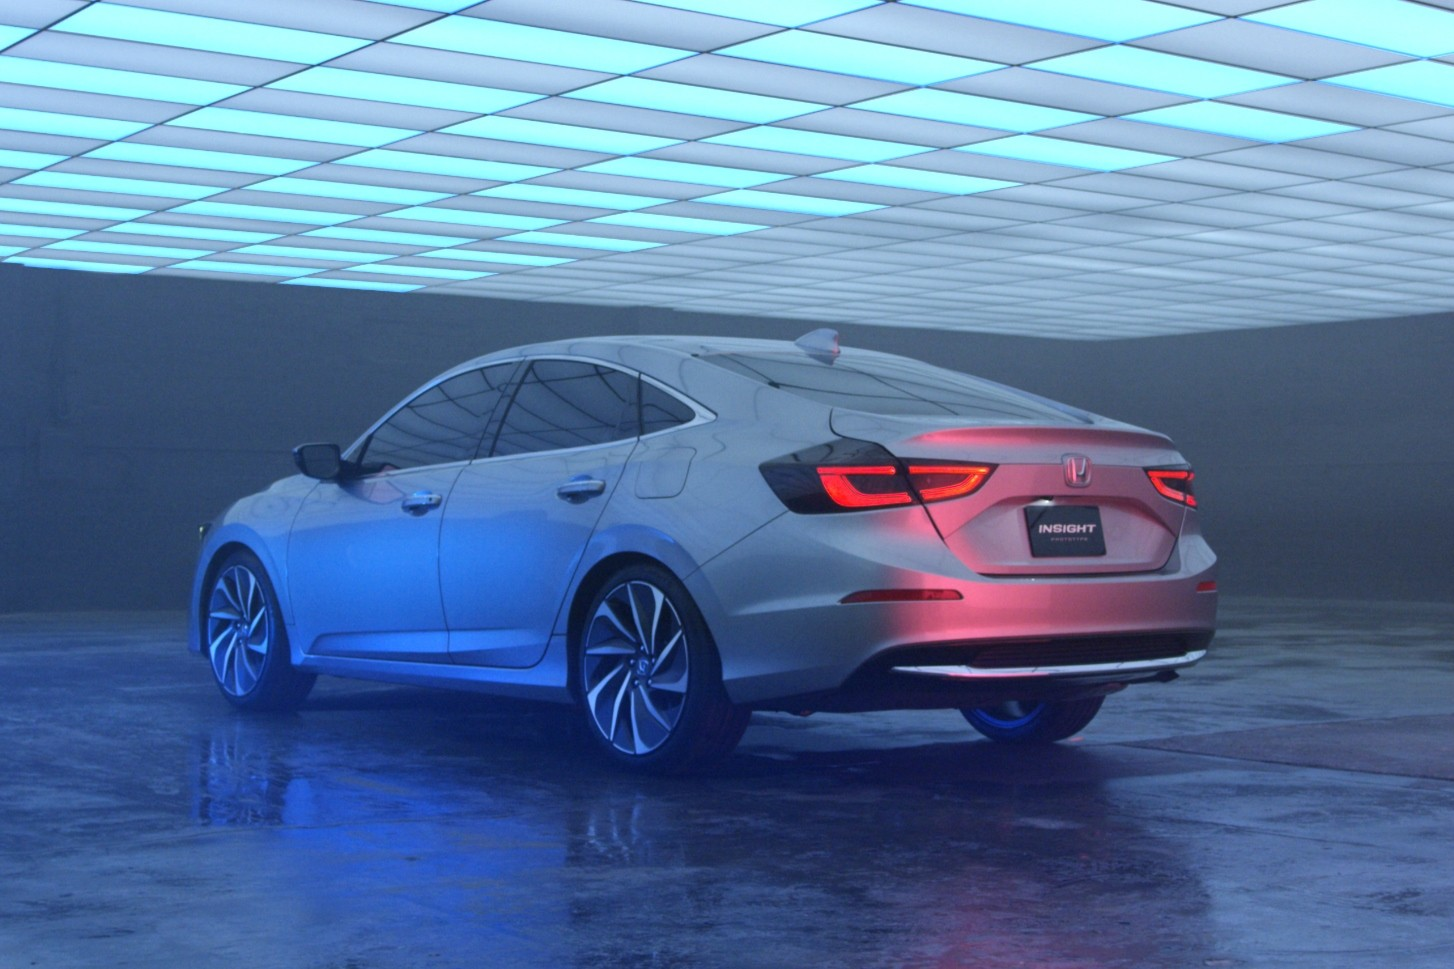 2019 Honda Insight Detailed, Gets More Than 50 MPG Combined ...